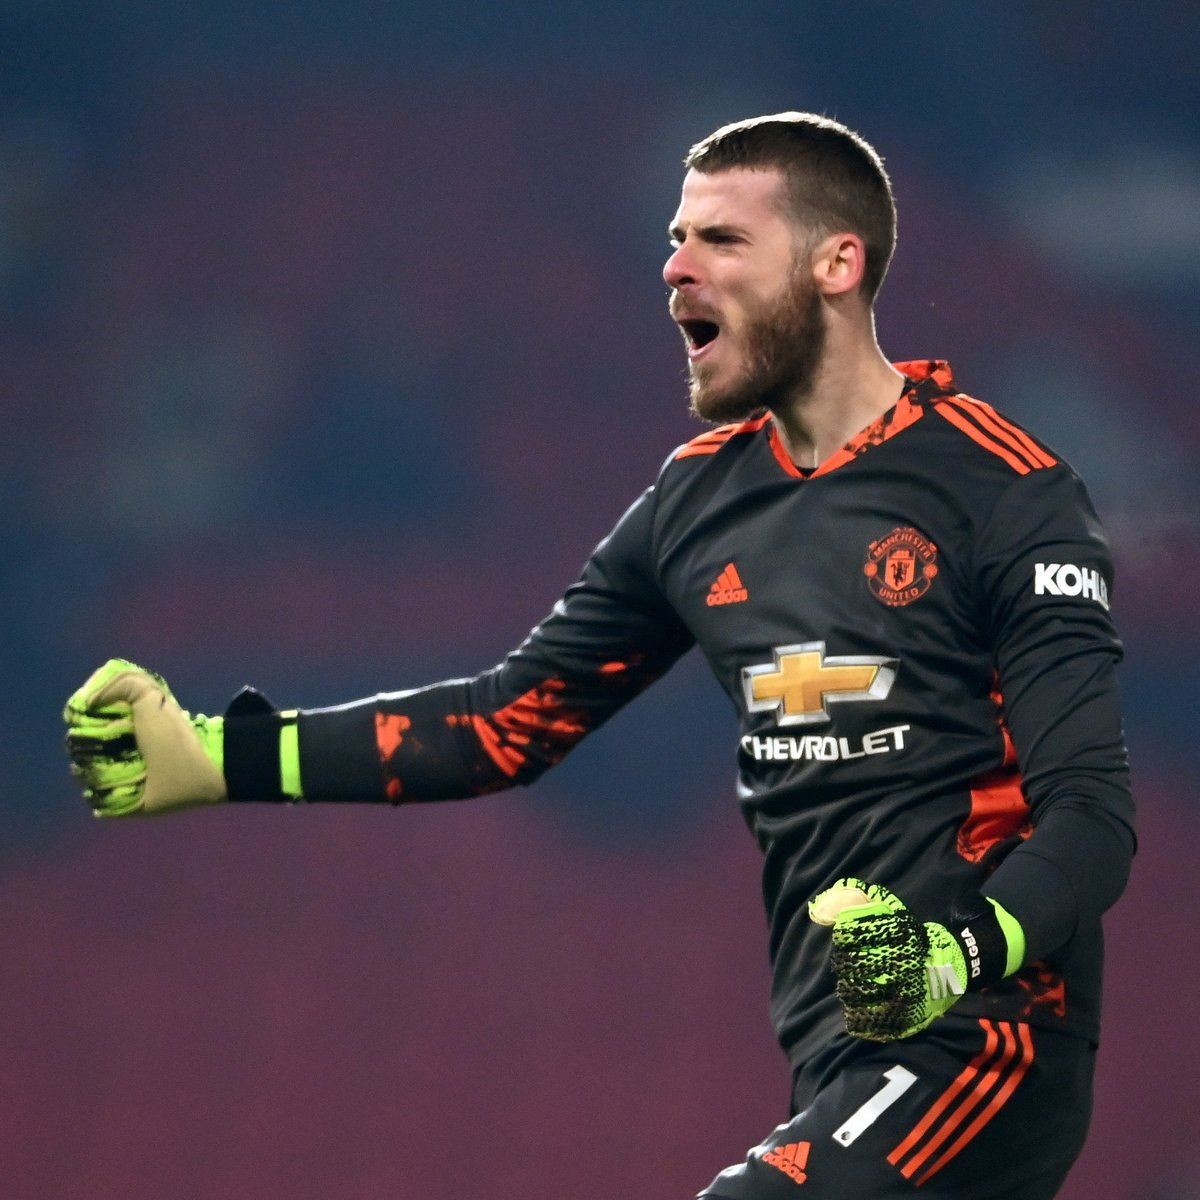 🔓 𝗔𝗖𝗛𝗜𝗘𝗩𝗘𝗠𝗘𝗡𝗧 𝗨𝗡𝗟𝗢𝗖𝗞𝗘𝗗 🔓  Keep 150 clean sheets for #MUFC 🚫  Vamos indeed, @D_DeGea 😍